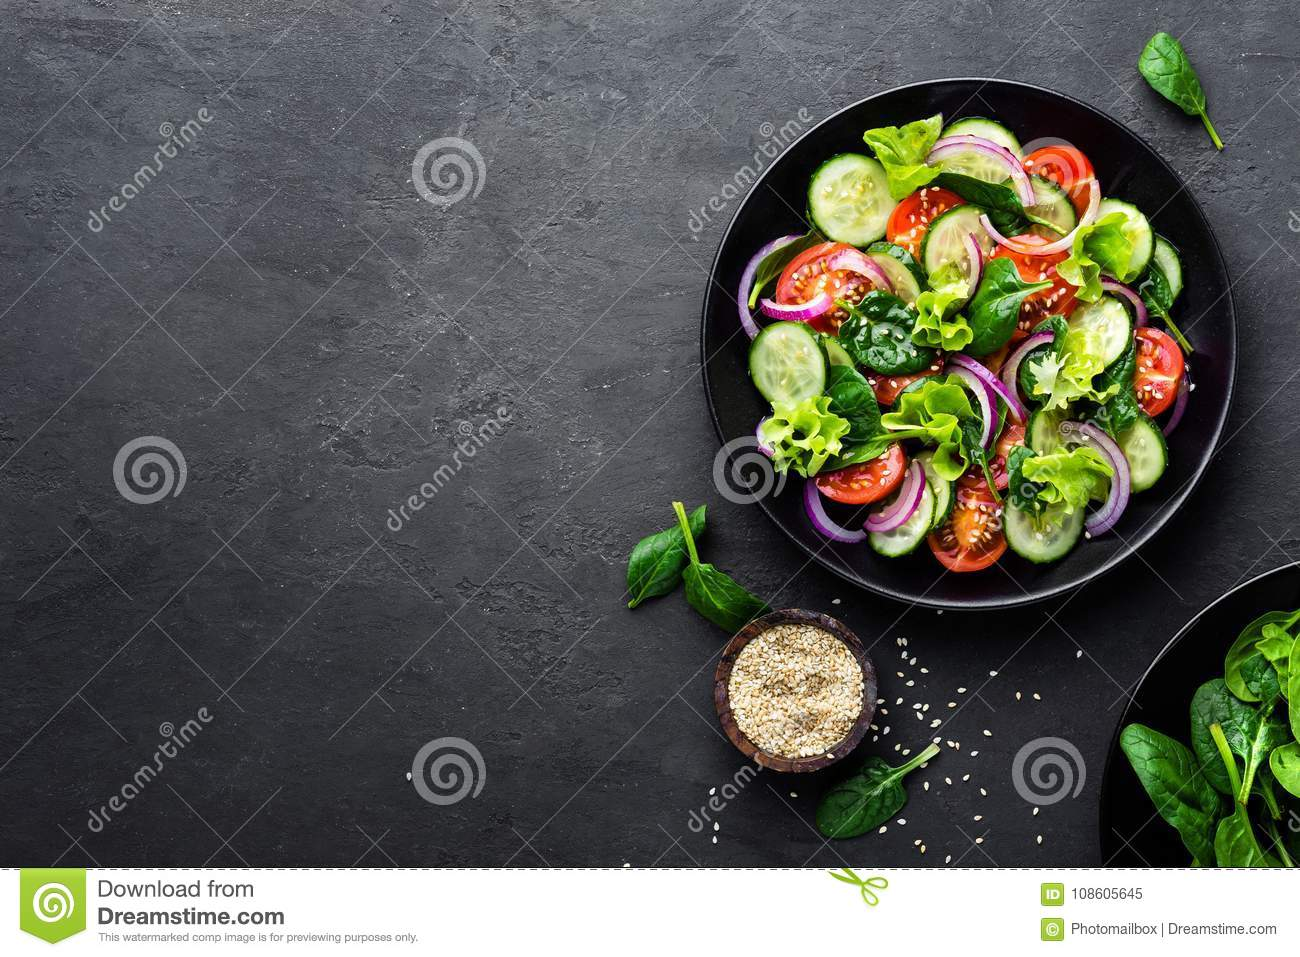 Healthy vegetable salad of fresh tomato, cucumber, onion, spinach, lettuce and sesame on plate. Diet menu